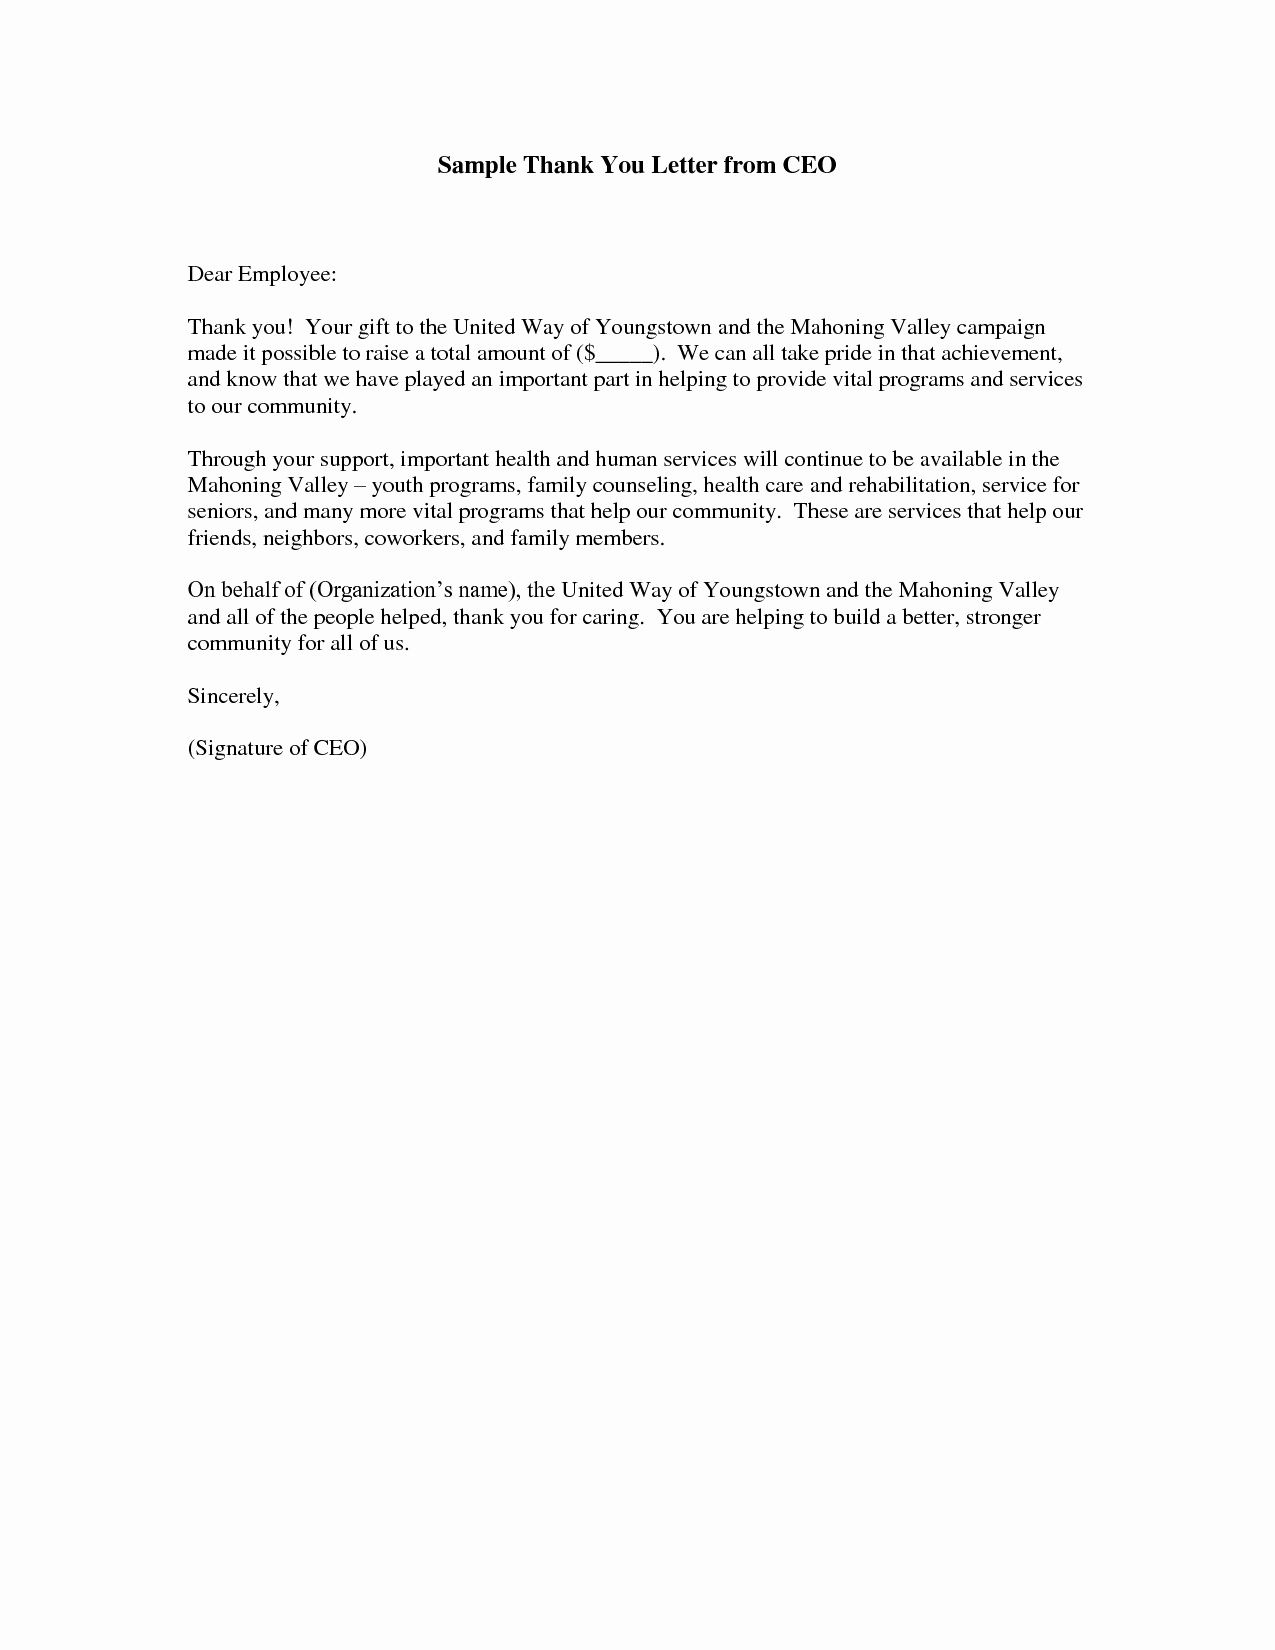 Car Donation Letter Template - Thank You Letter format Inspirational Thank You Letter Template